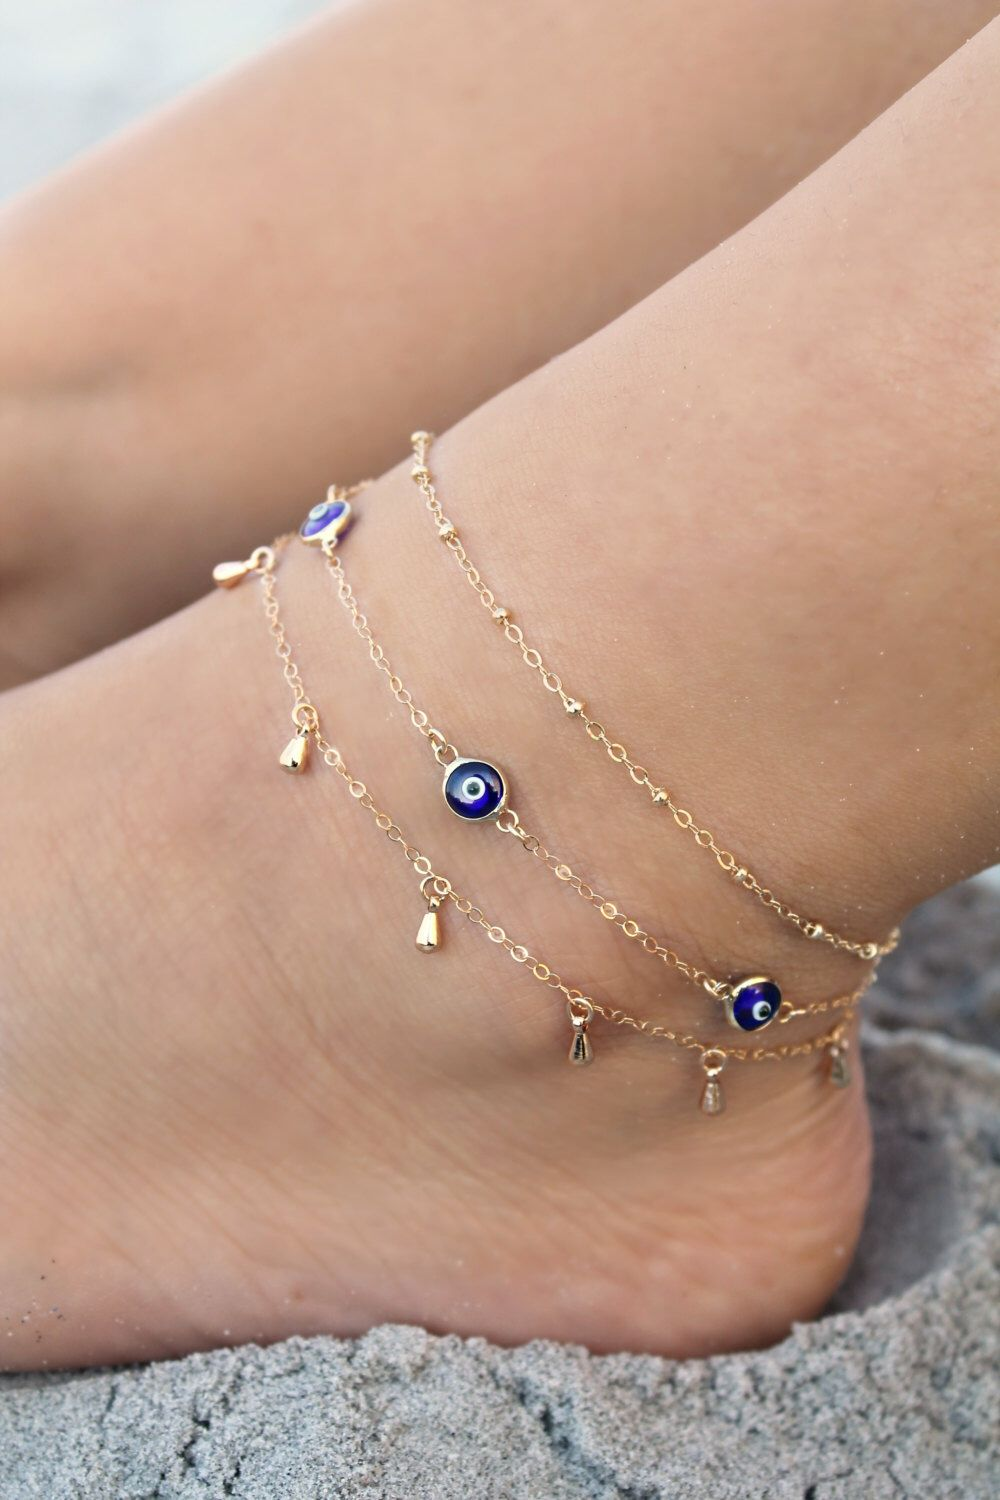 Mini Discs Anklet Chain 925 Silver 14K Gold Filled